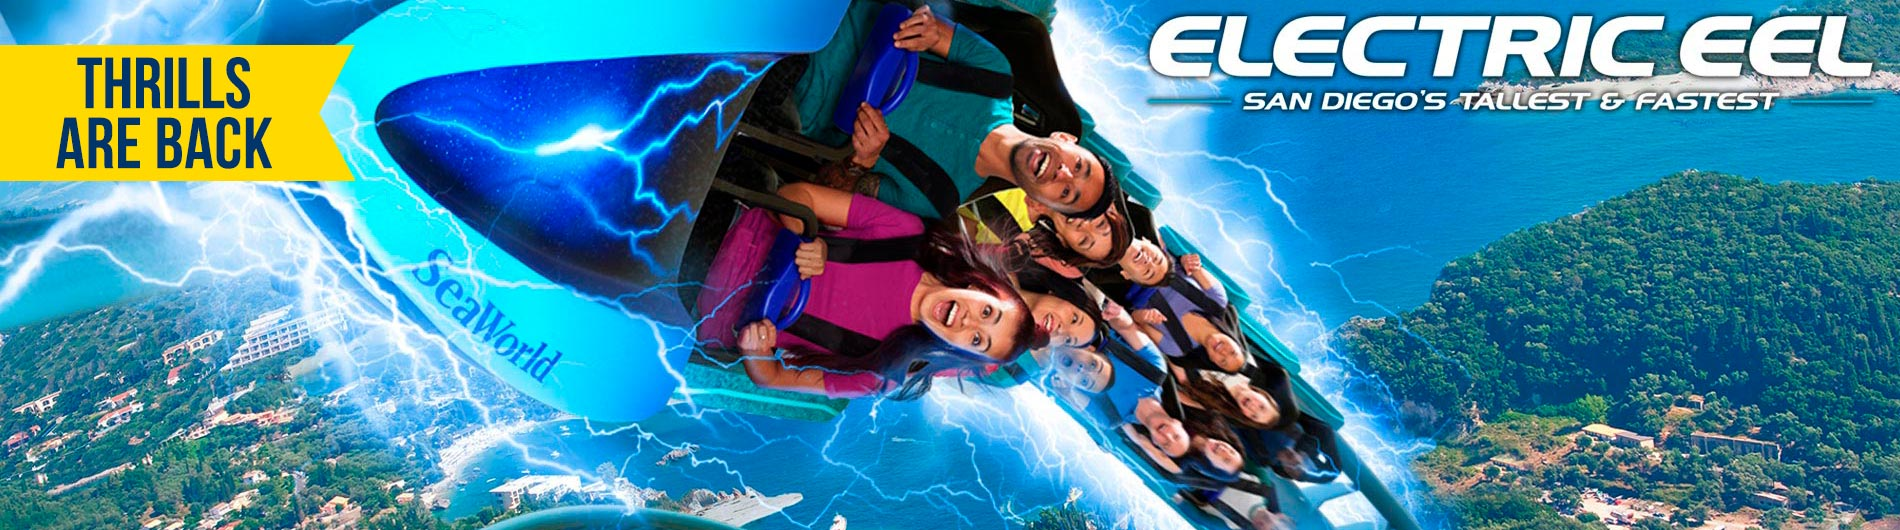 The thrills are back at SeaWorld San Diego